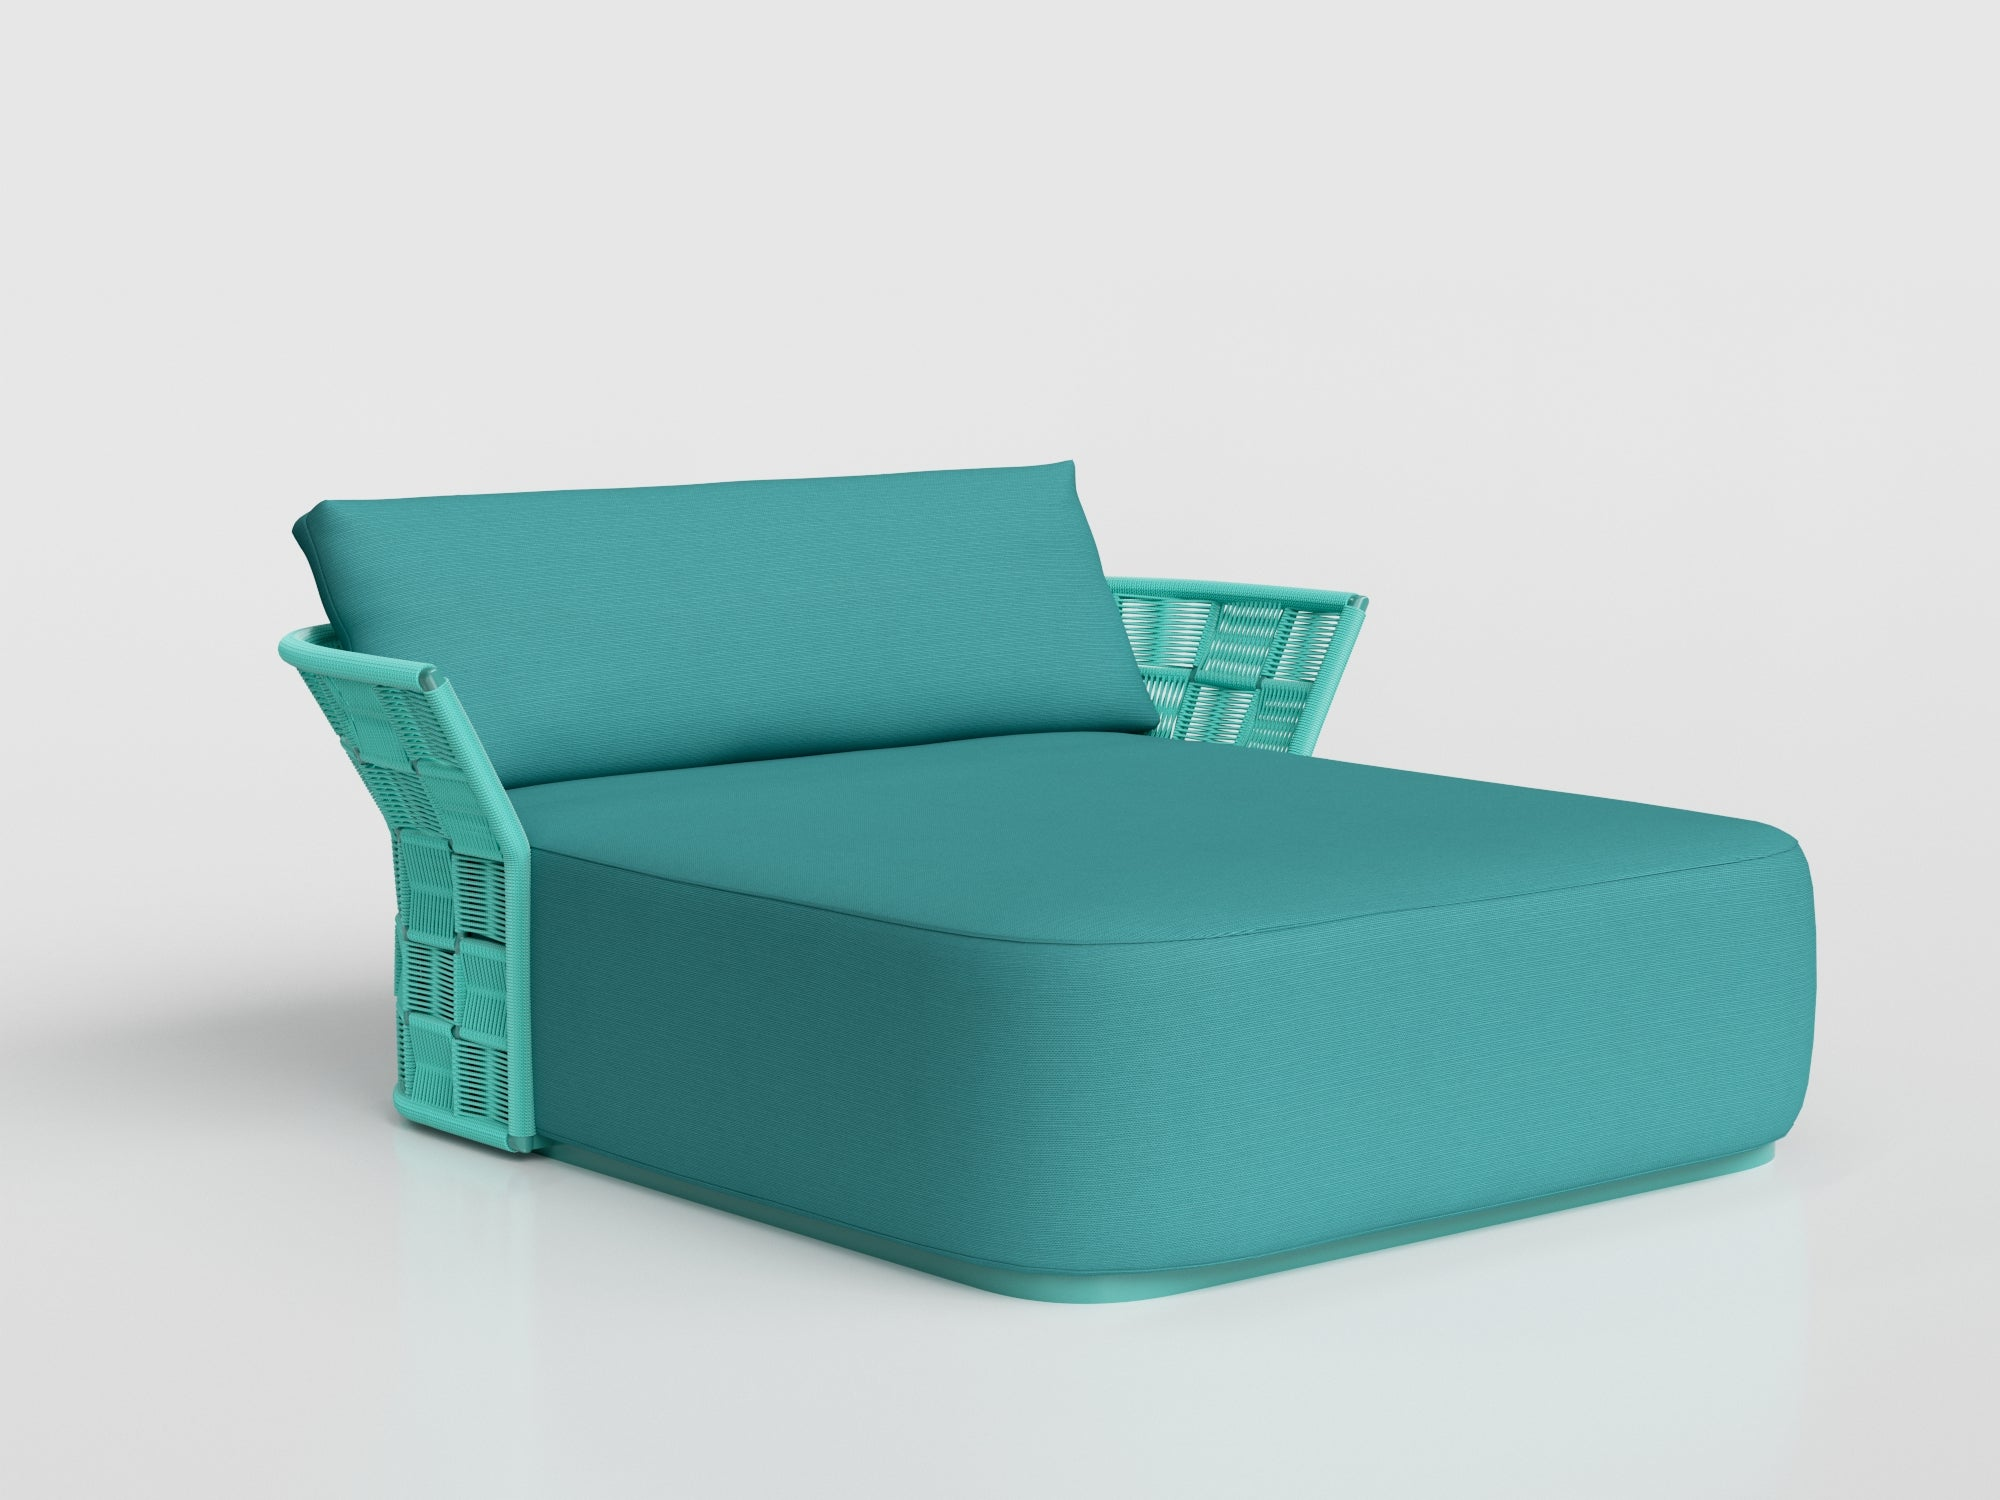 5299 - Sedona Daybed